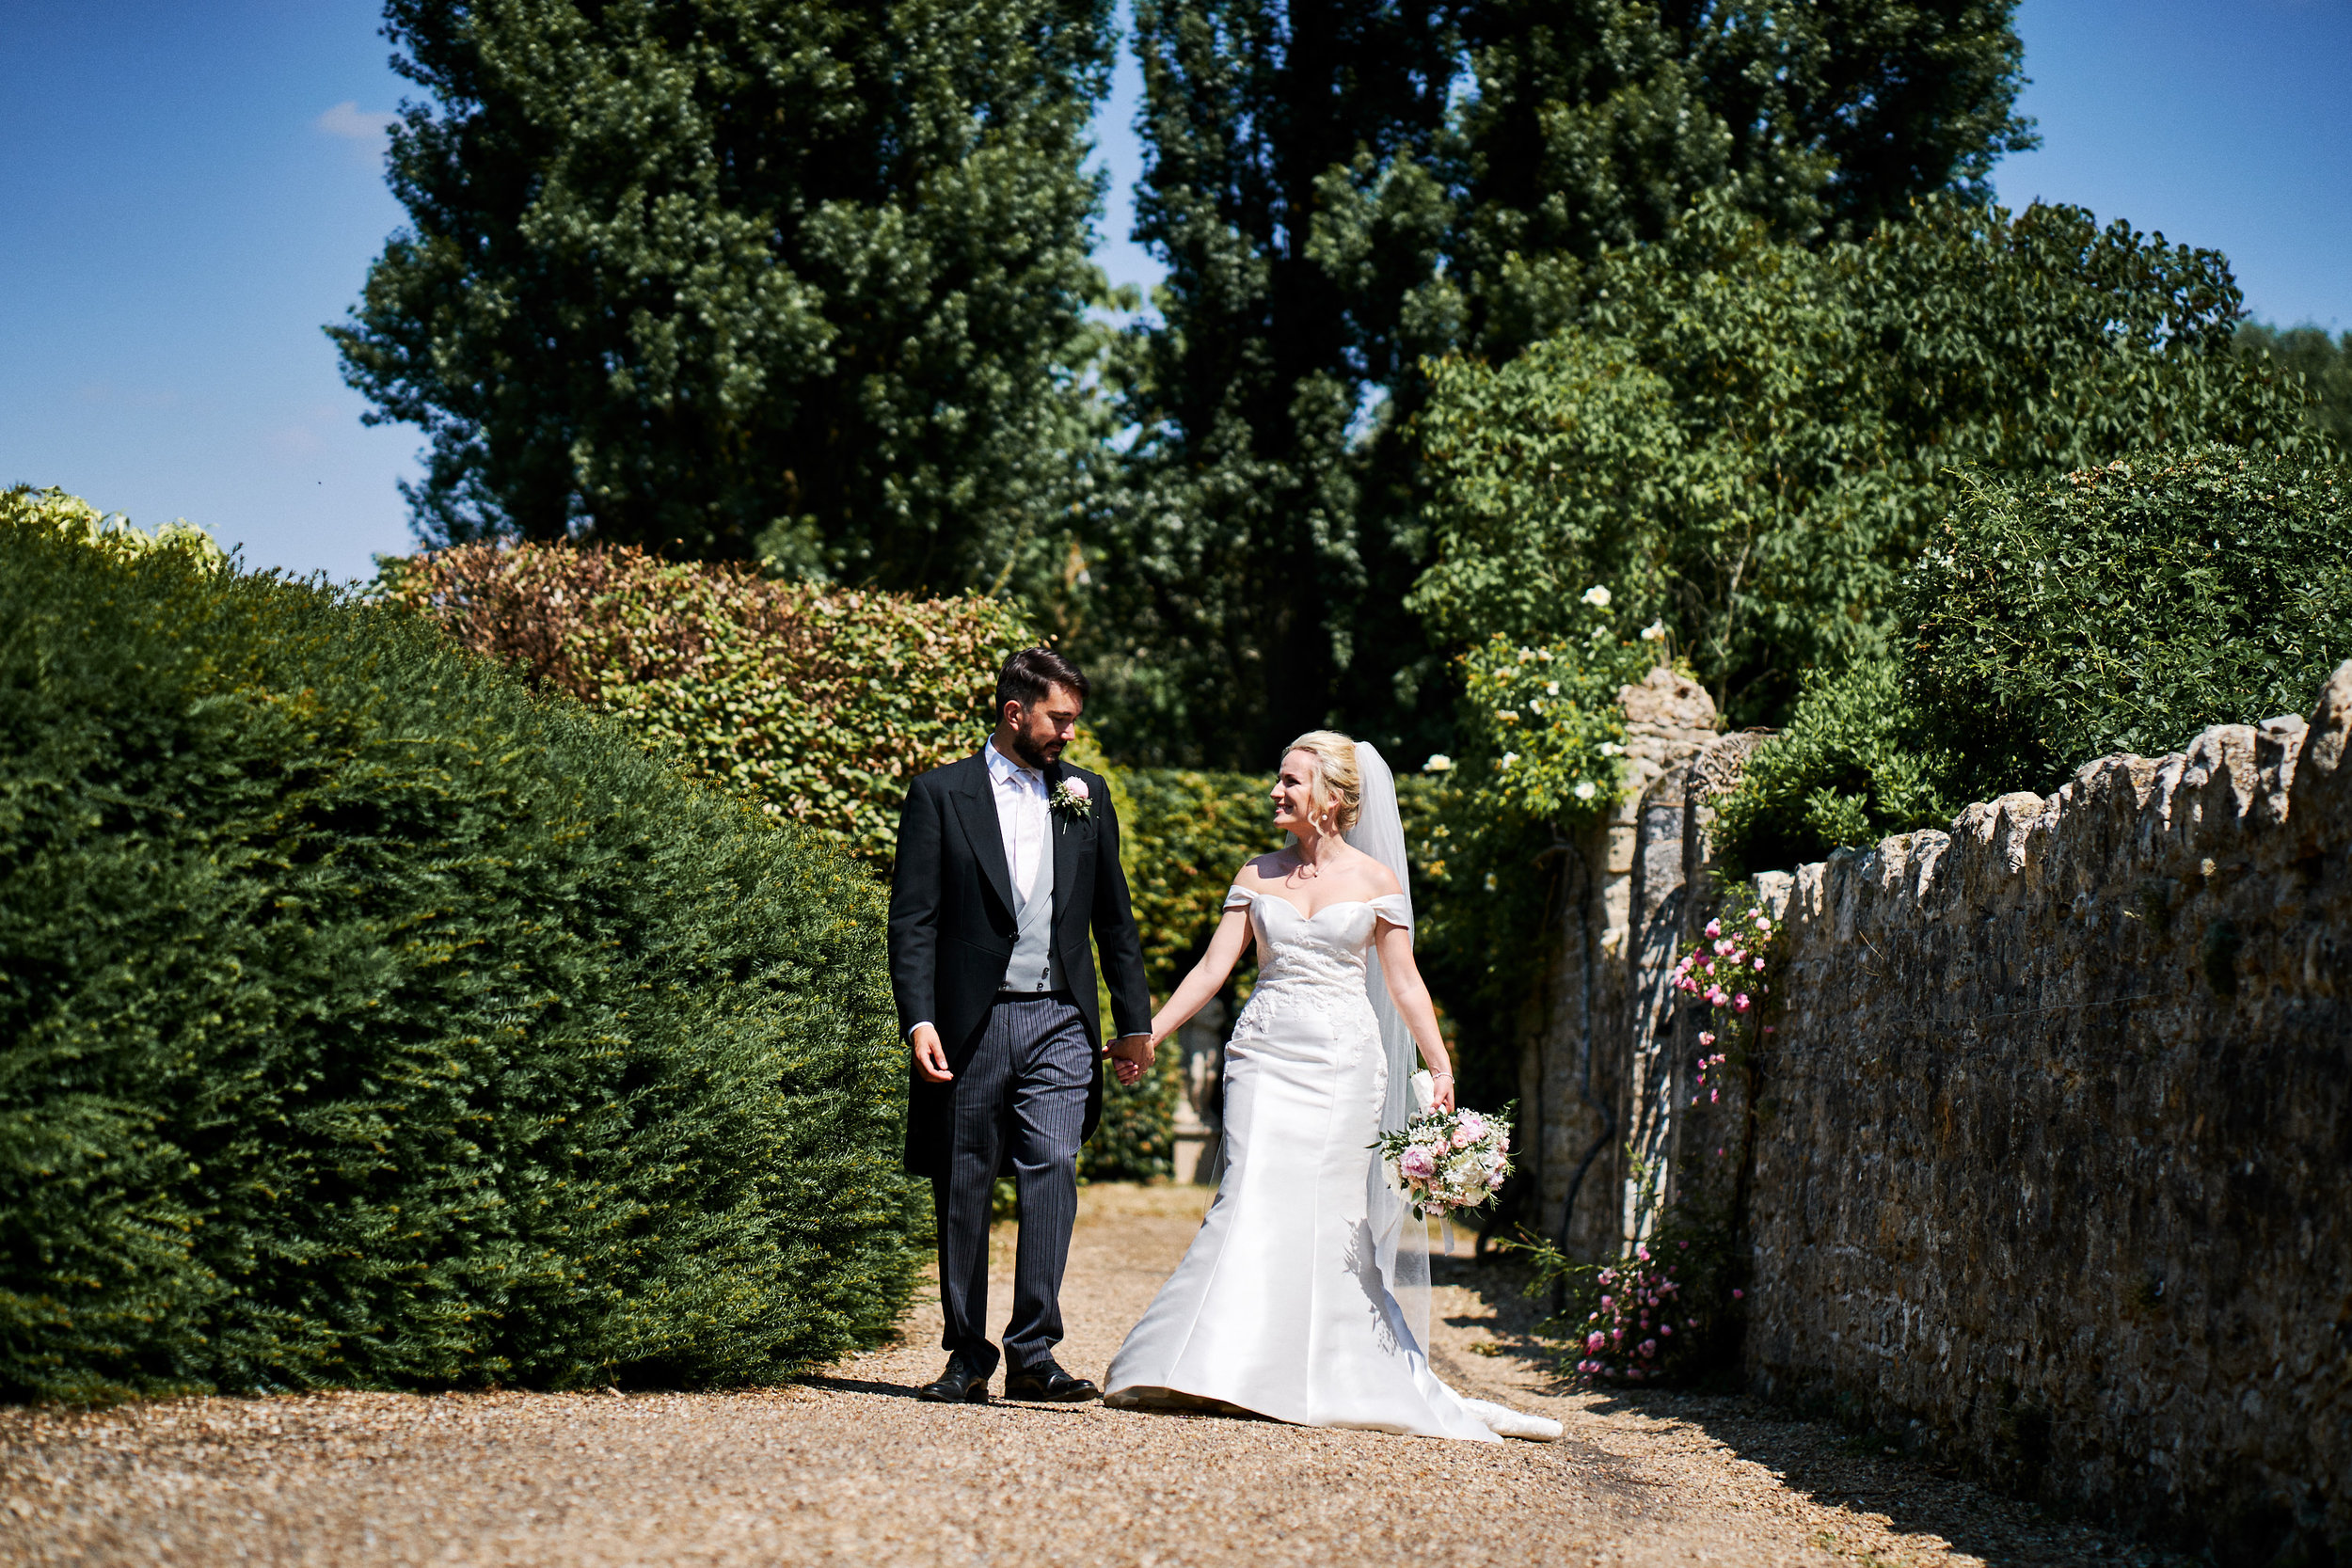 Kathleen Nick Wedding Notley Abbey Thame at Notley Abbey, Thame Oxford on 05 July 2018.